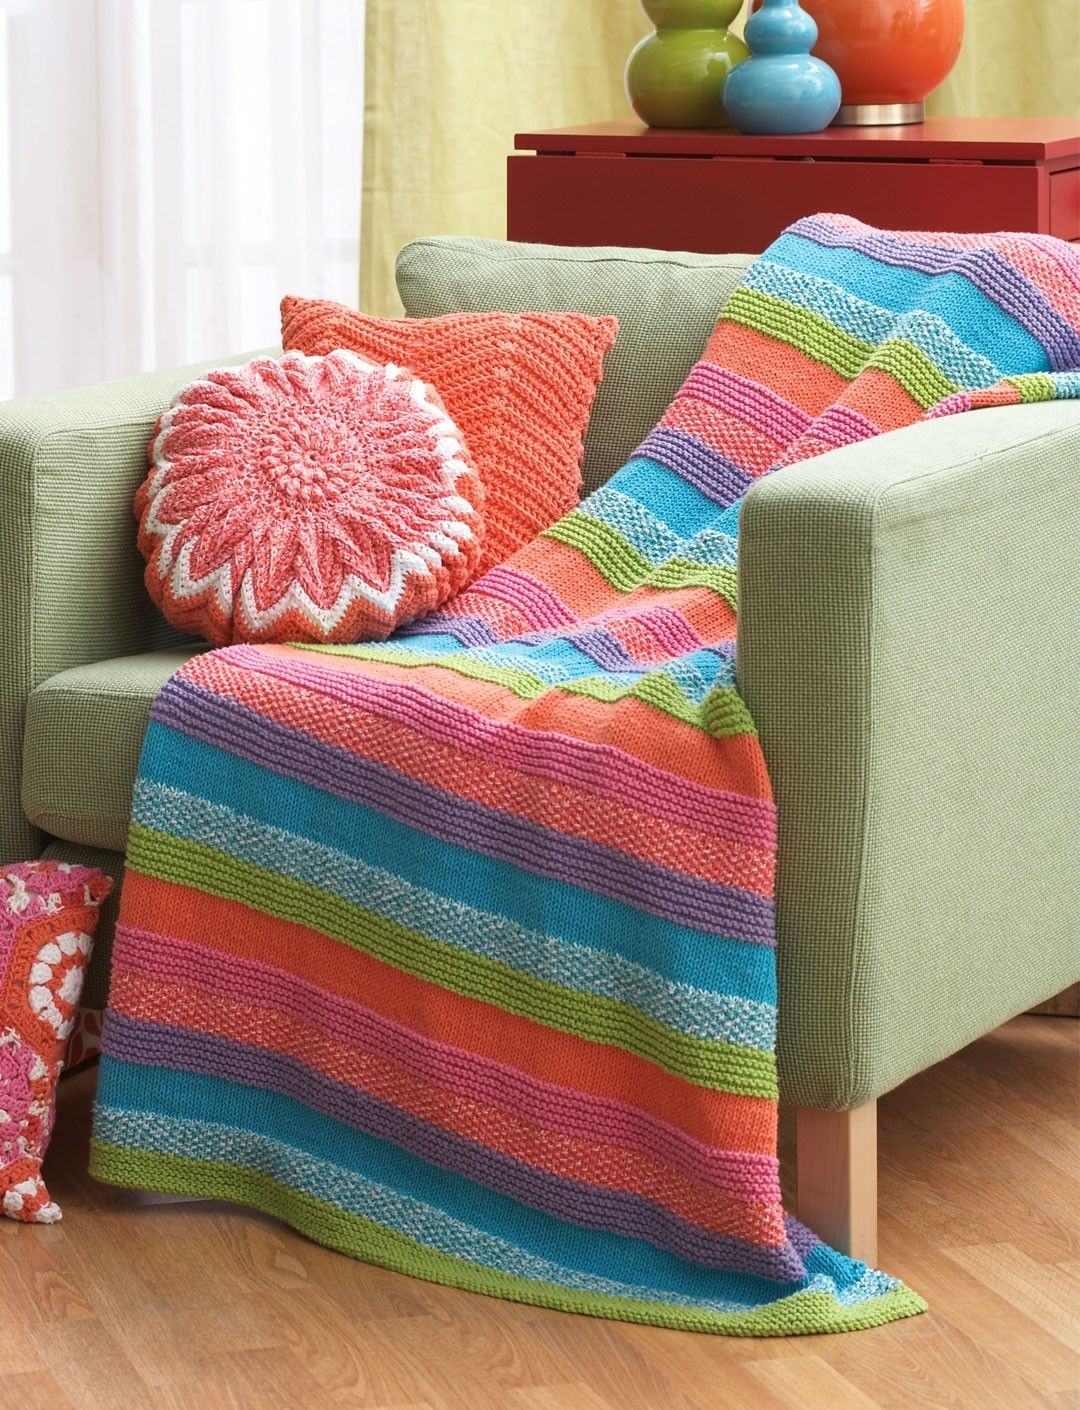 Yarnspirations bernat striped blanket free pattern easy yarnspirations bernat striped blanket free pattern easy cotton yarn bankloansurffo Image collections